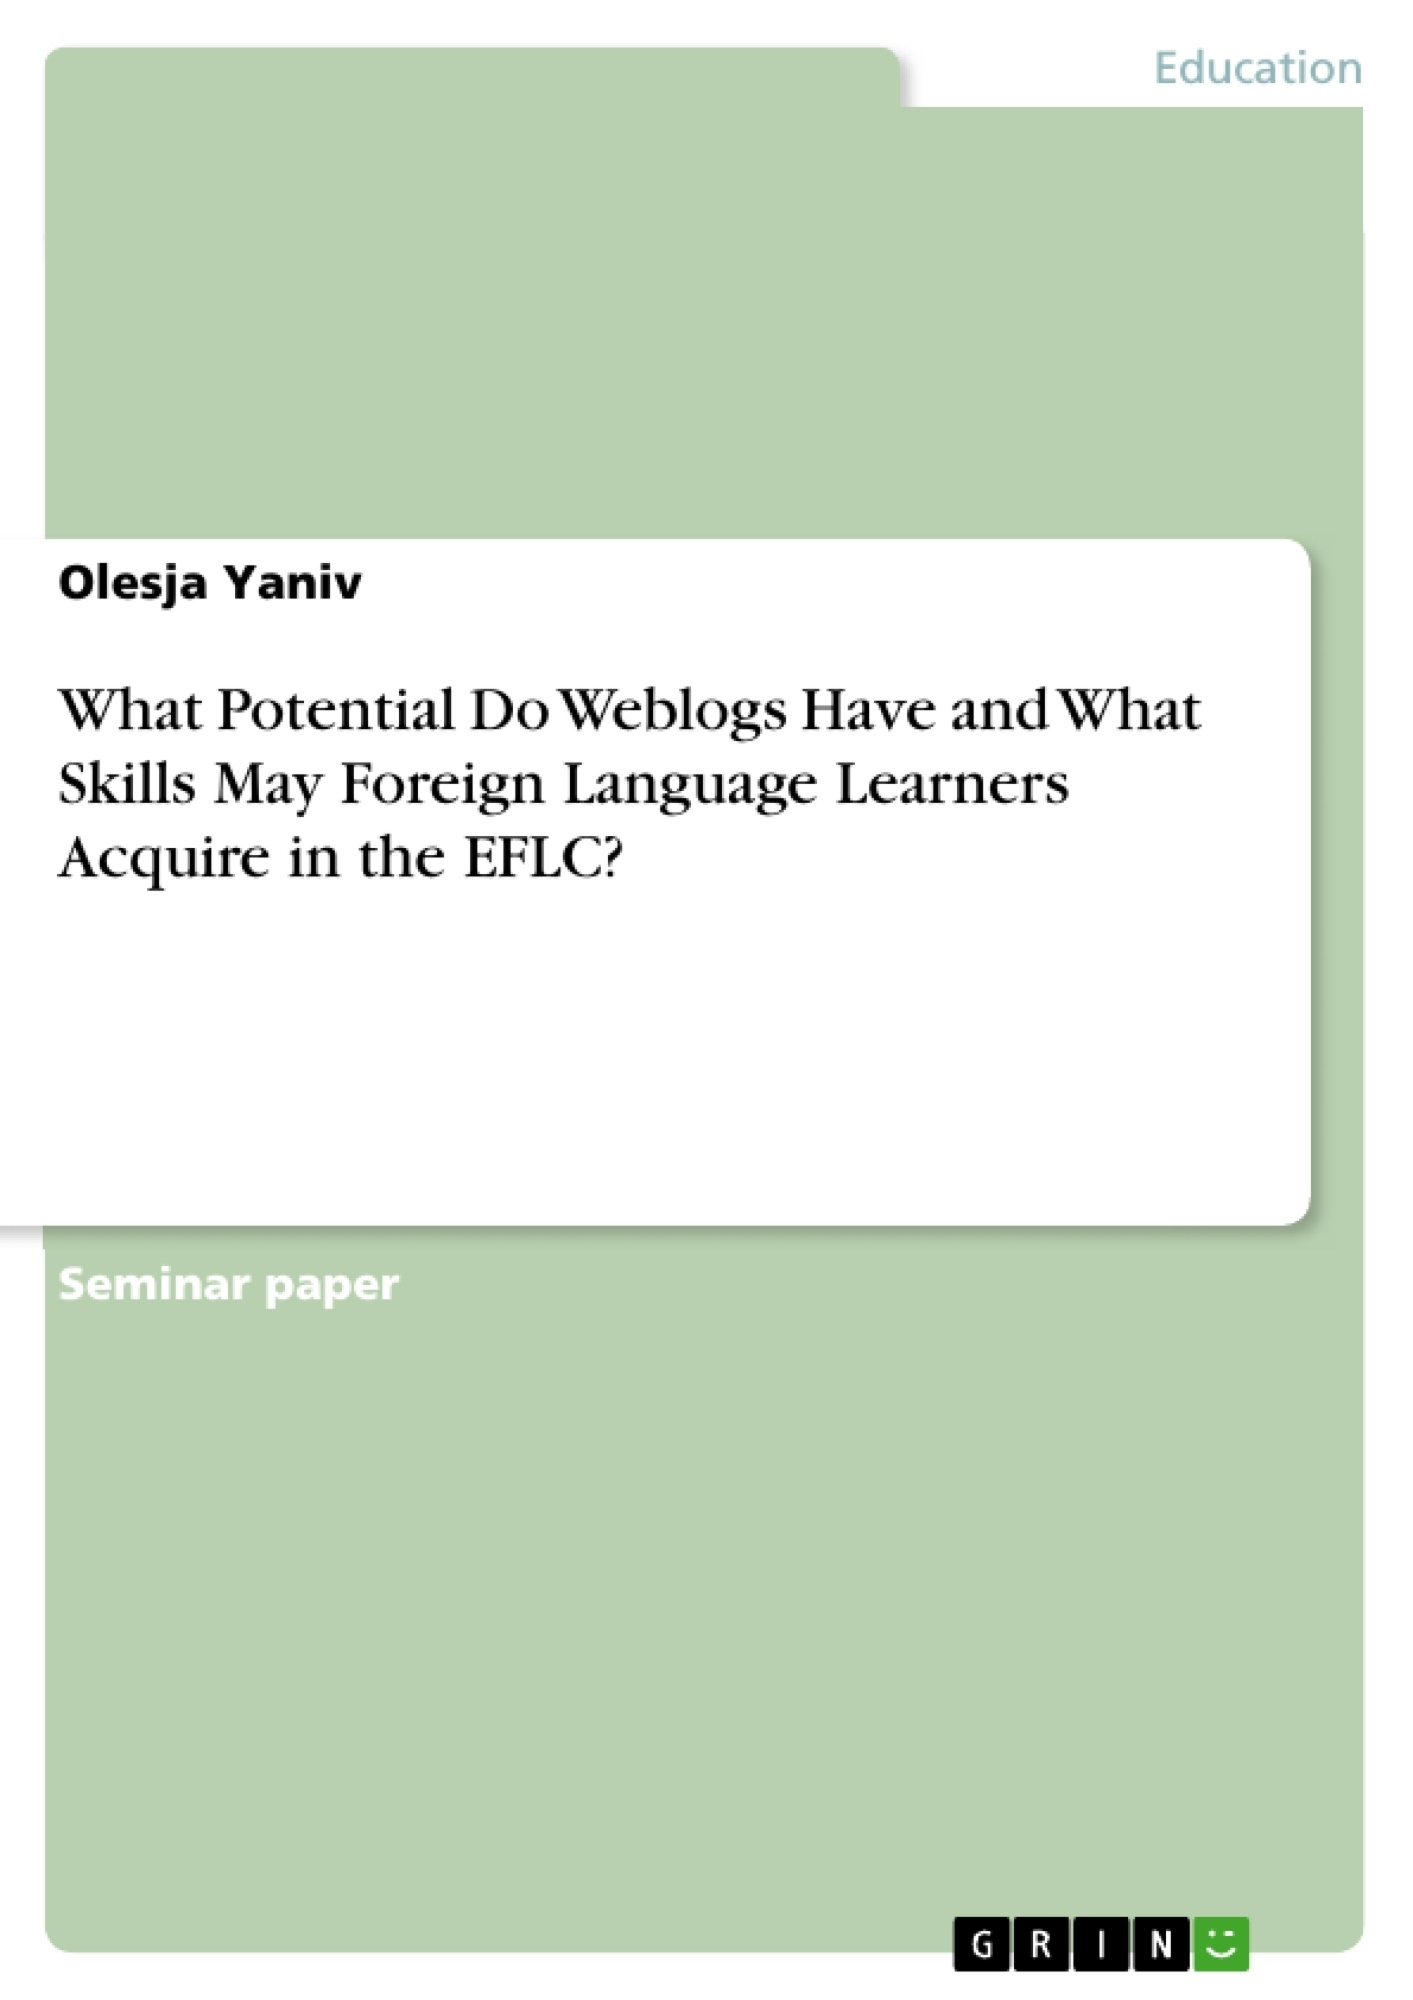 Title: What Potential Do Weblogs Have and What Skills May Foreign Language Learners Acquire in the EFLC?